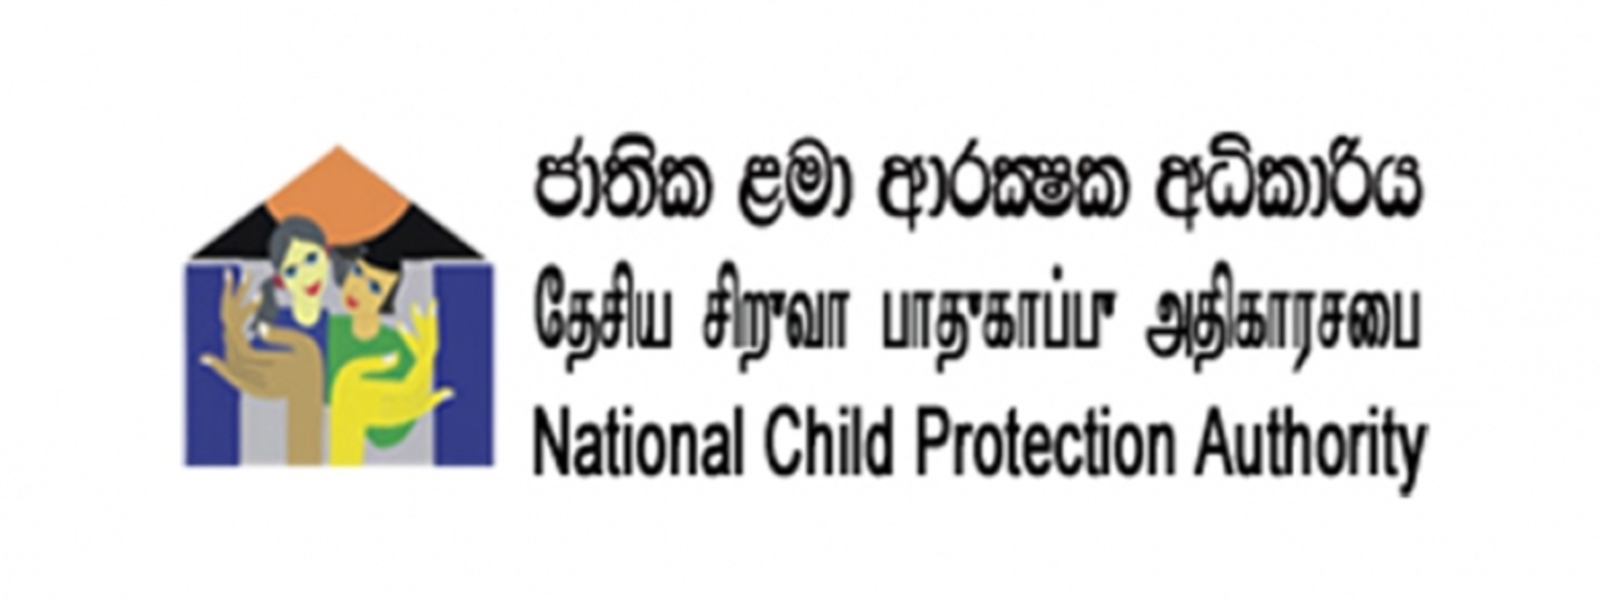 NCPA receive over 4000 complaints of child abuse cases so far this year